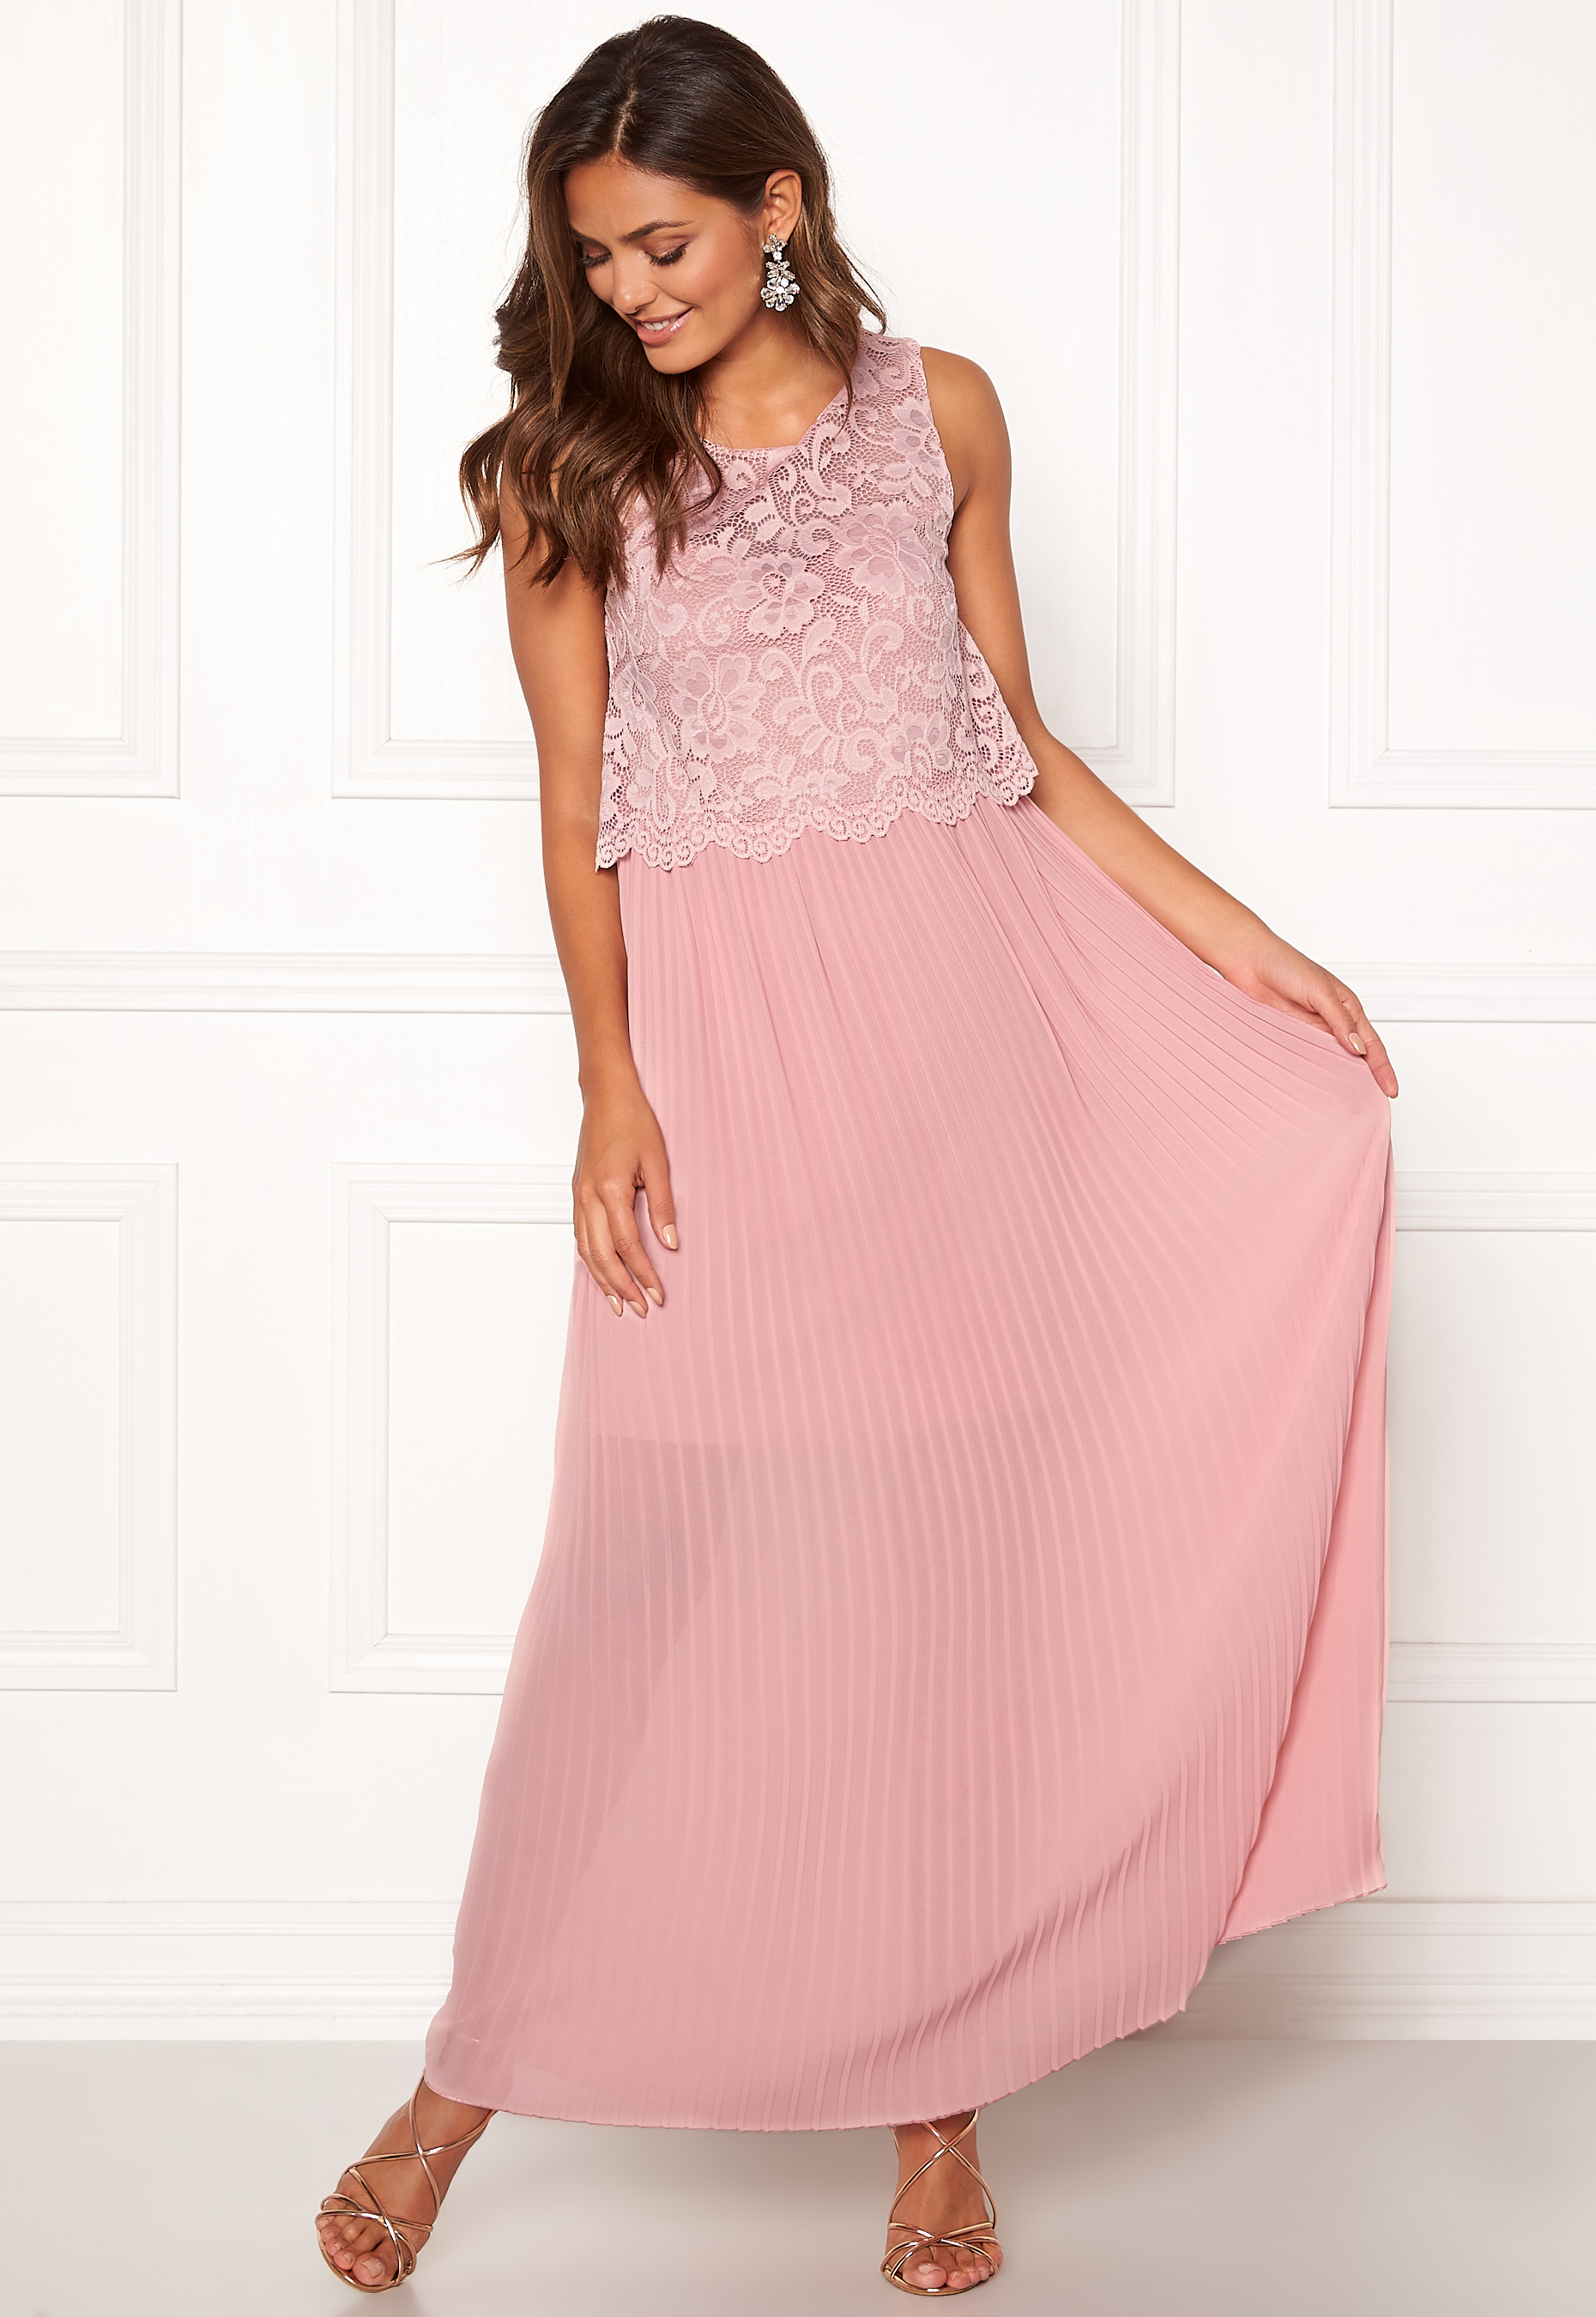 d8bf0f73328 Pictures Of Beautiful Maxi Dresses